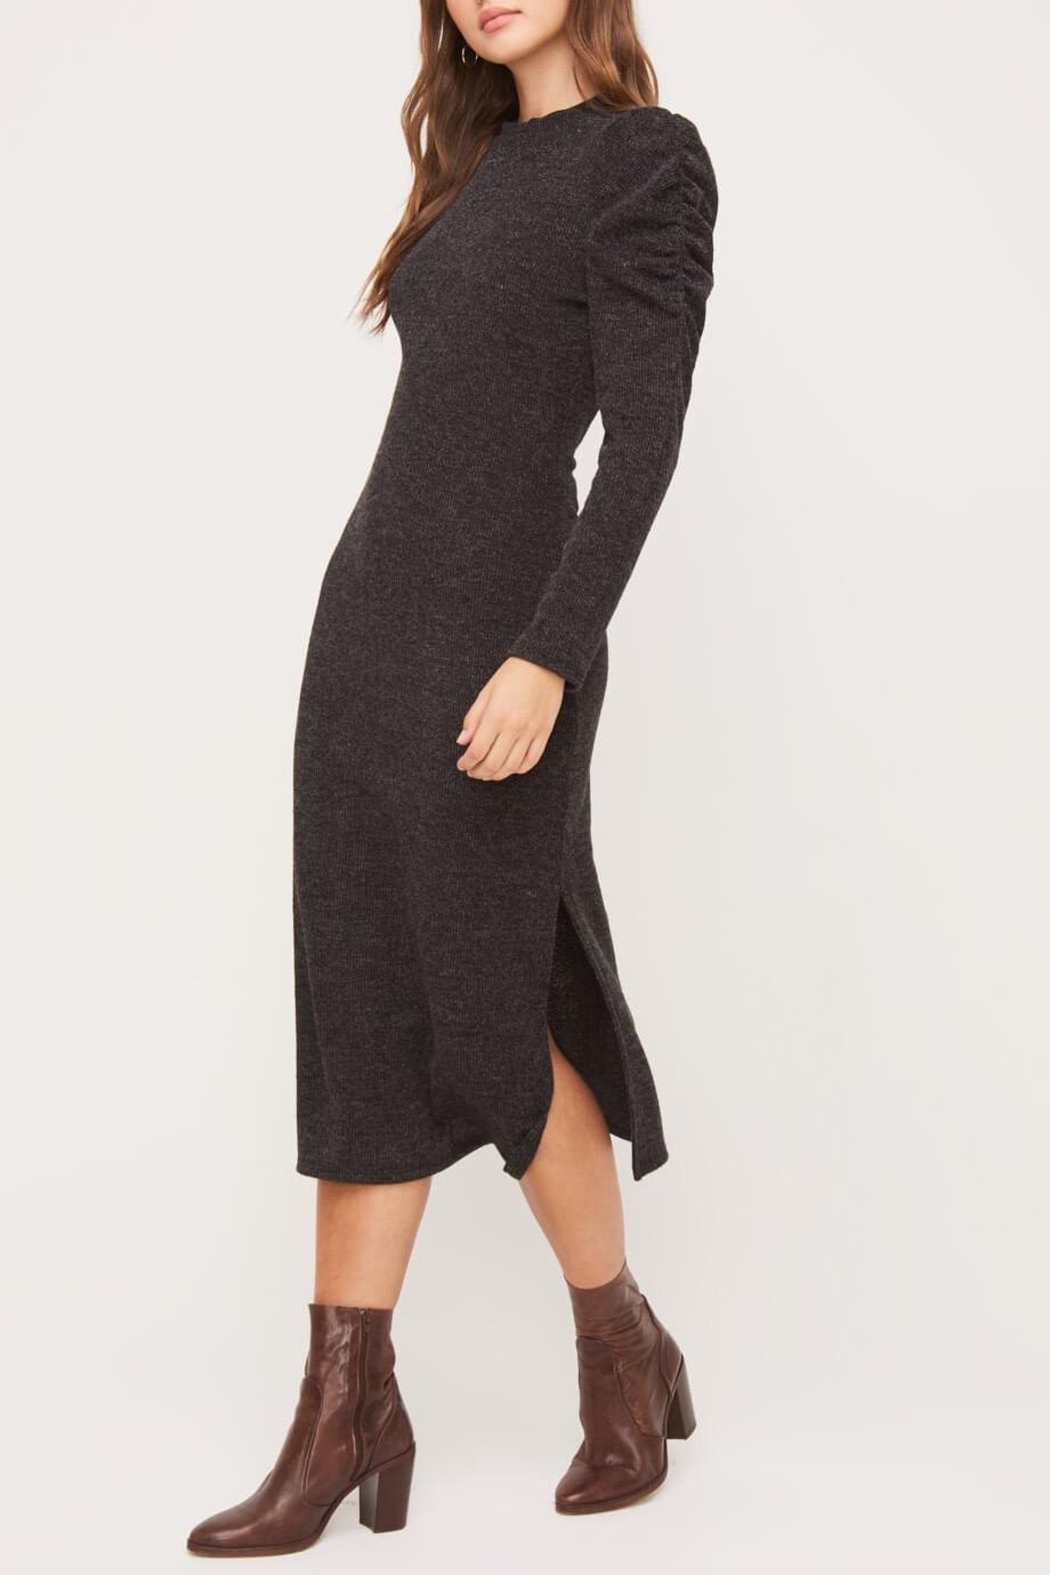 Lush Clothing  Puff-Shoulder Knit Dress - Front Full Image